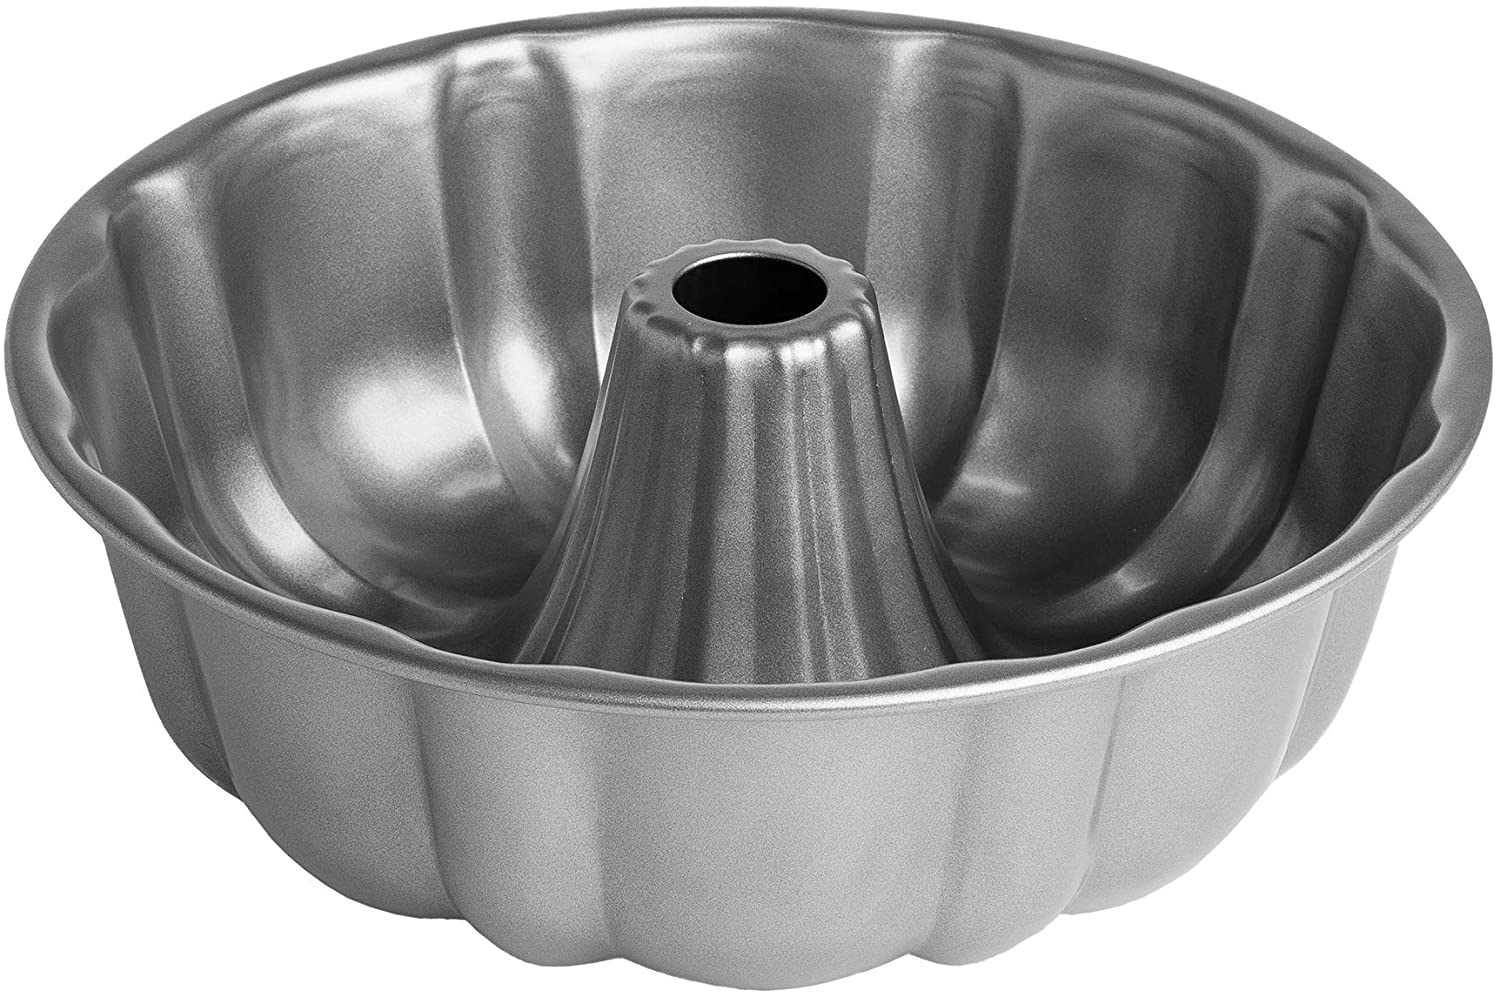 Cooking Light Fluted Tube Cake Pan Non-Stick, Quick Release, Carbon Steel Bakeware, 9 Inch, Gray